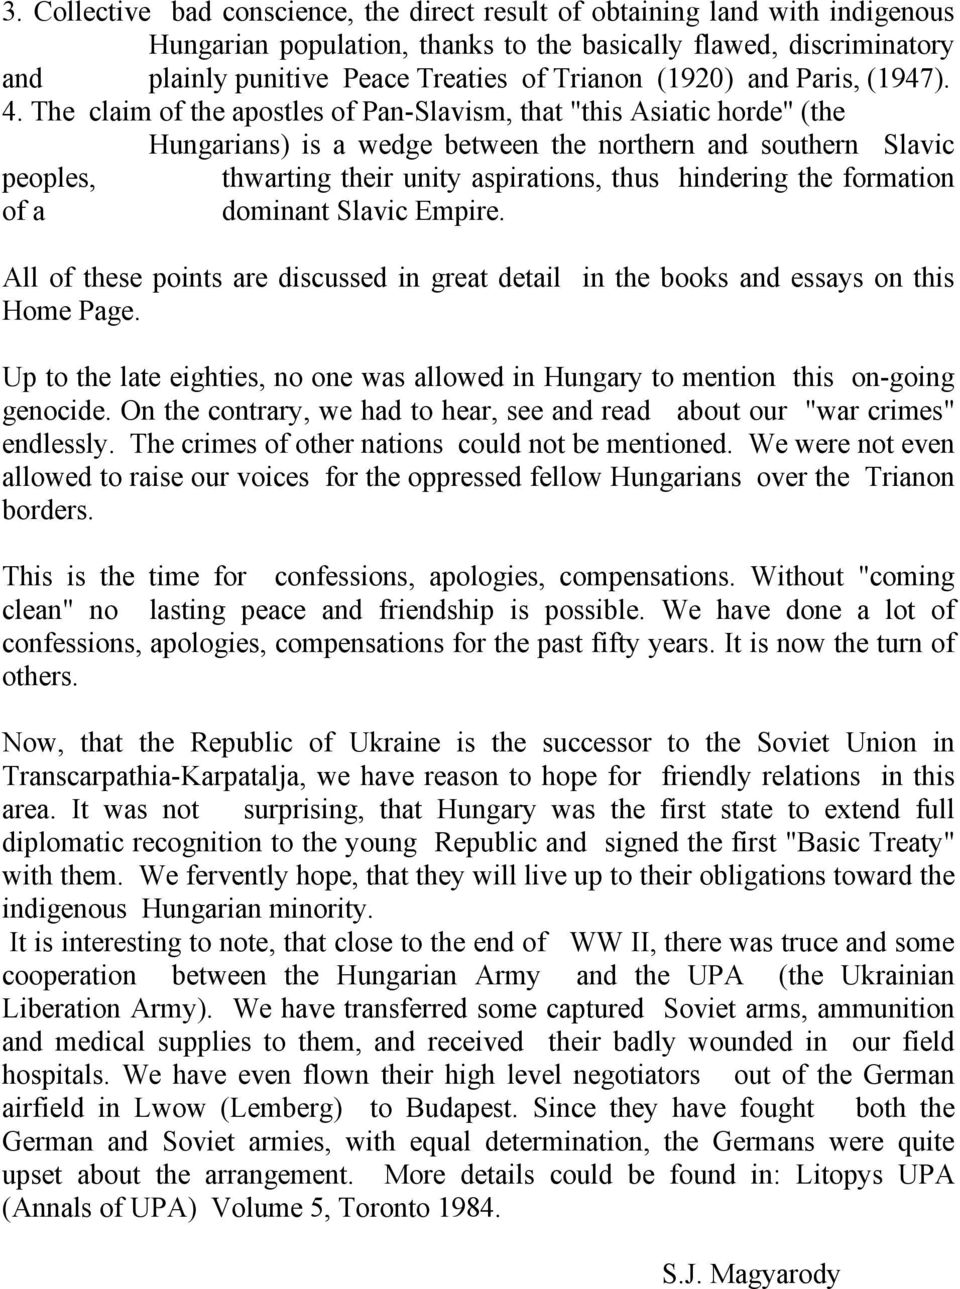 "The claim of the apostles of Pan-Slavism, that ""this Asiatic horde"" (the Hungarians) is a wedge between the northern and southern Slavic peoples, thwarting their unity aspirations, thus hindering the"